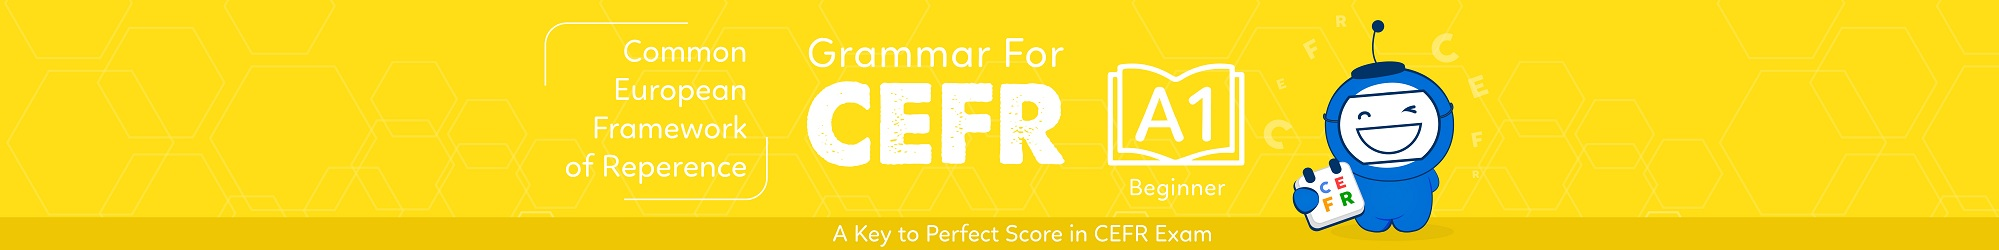 GRAMMAR FOR CEFR (A1) banner